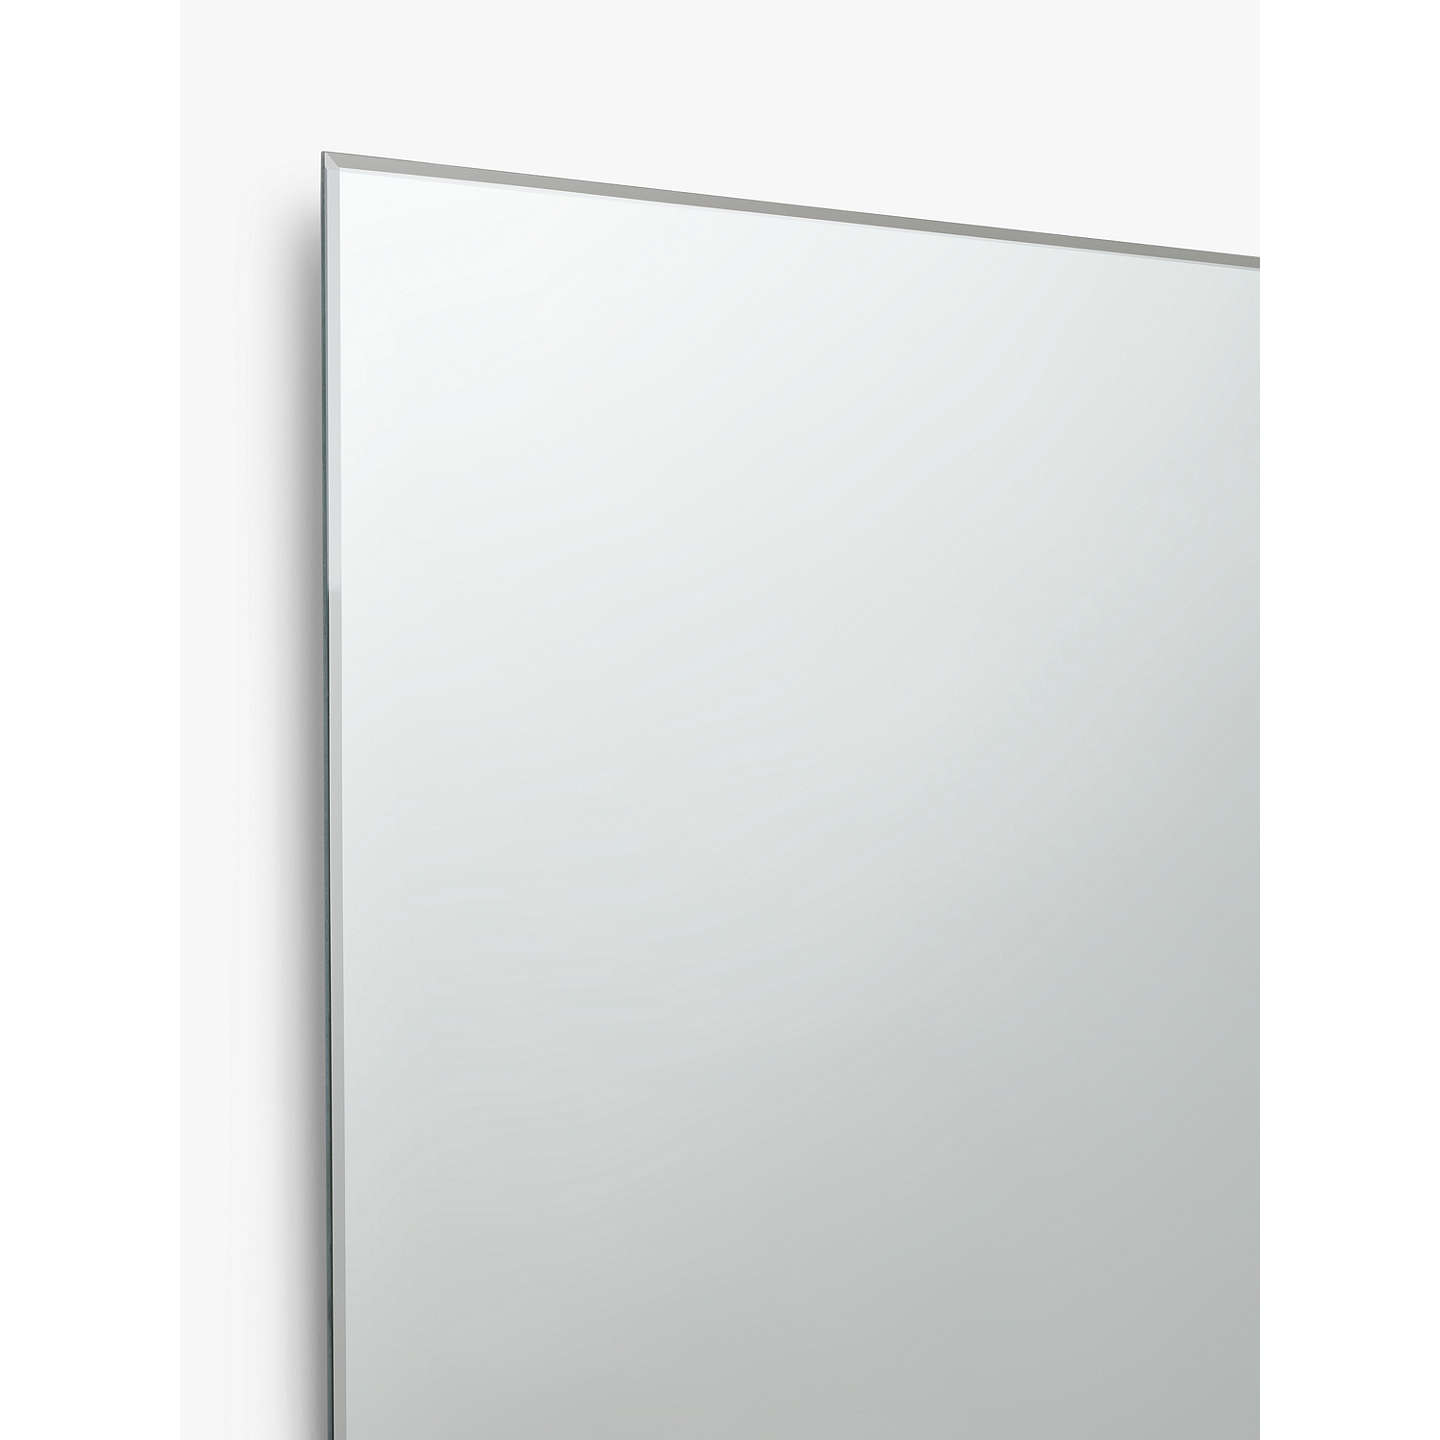 john lewis bathroom cabinet lewis mirrored bathroom cabinet at lewis 18944